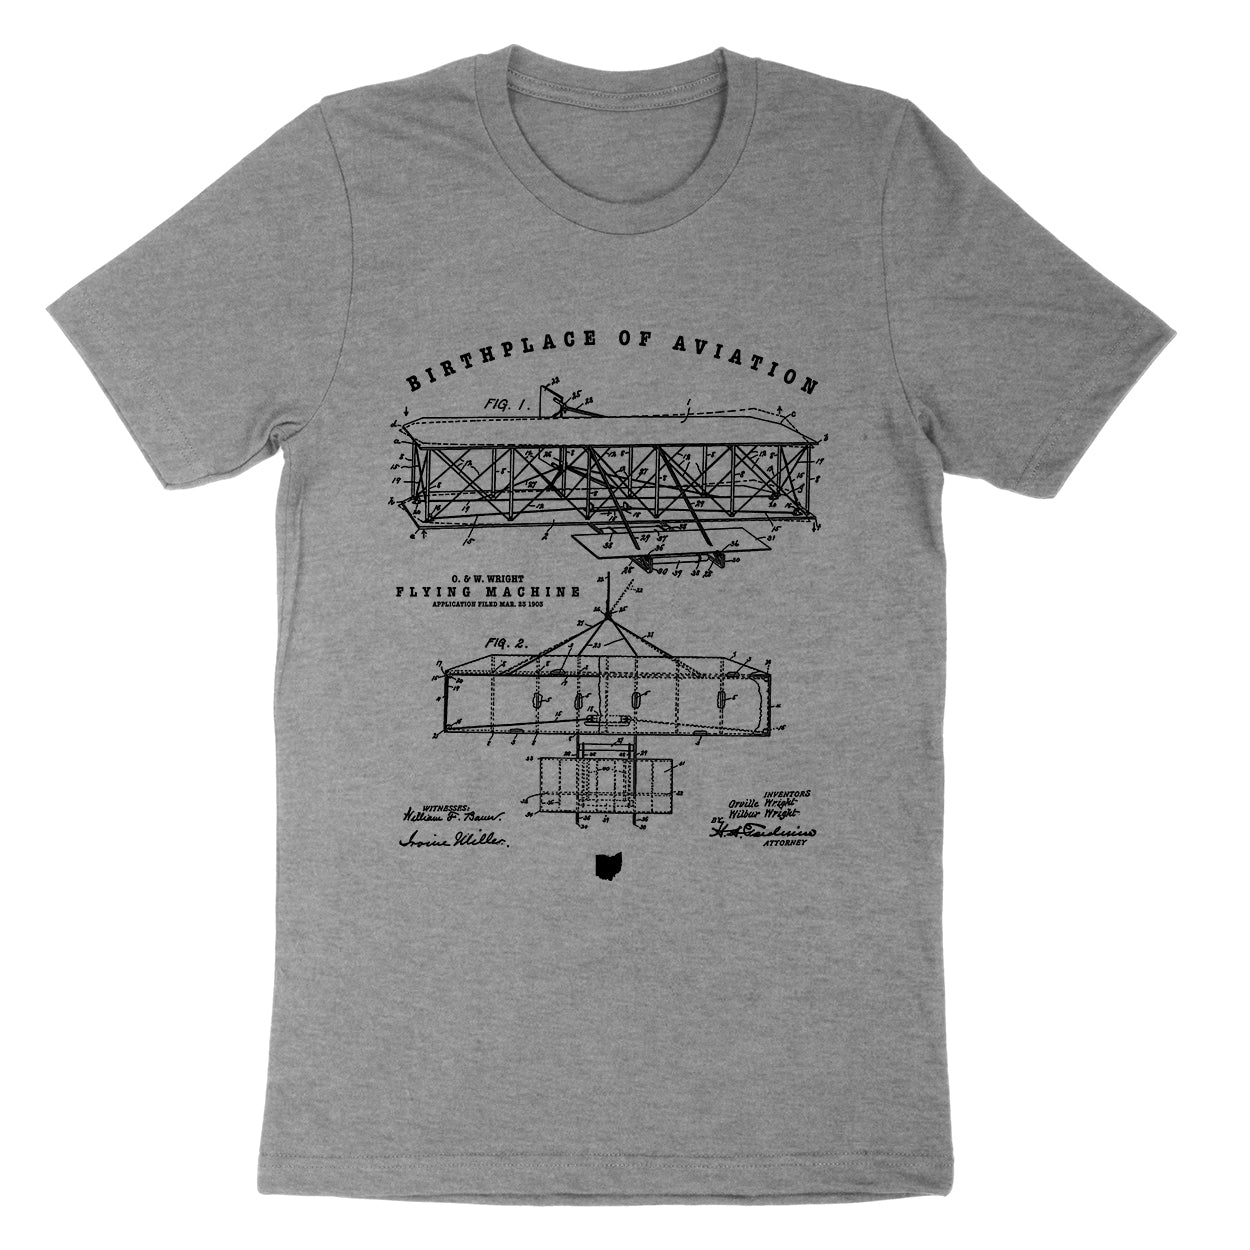 Wright Birthplace Of Aviation Youth T-Shirt - Clothe Ohio - Soft Ohio Shirts